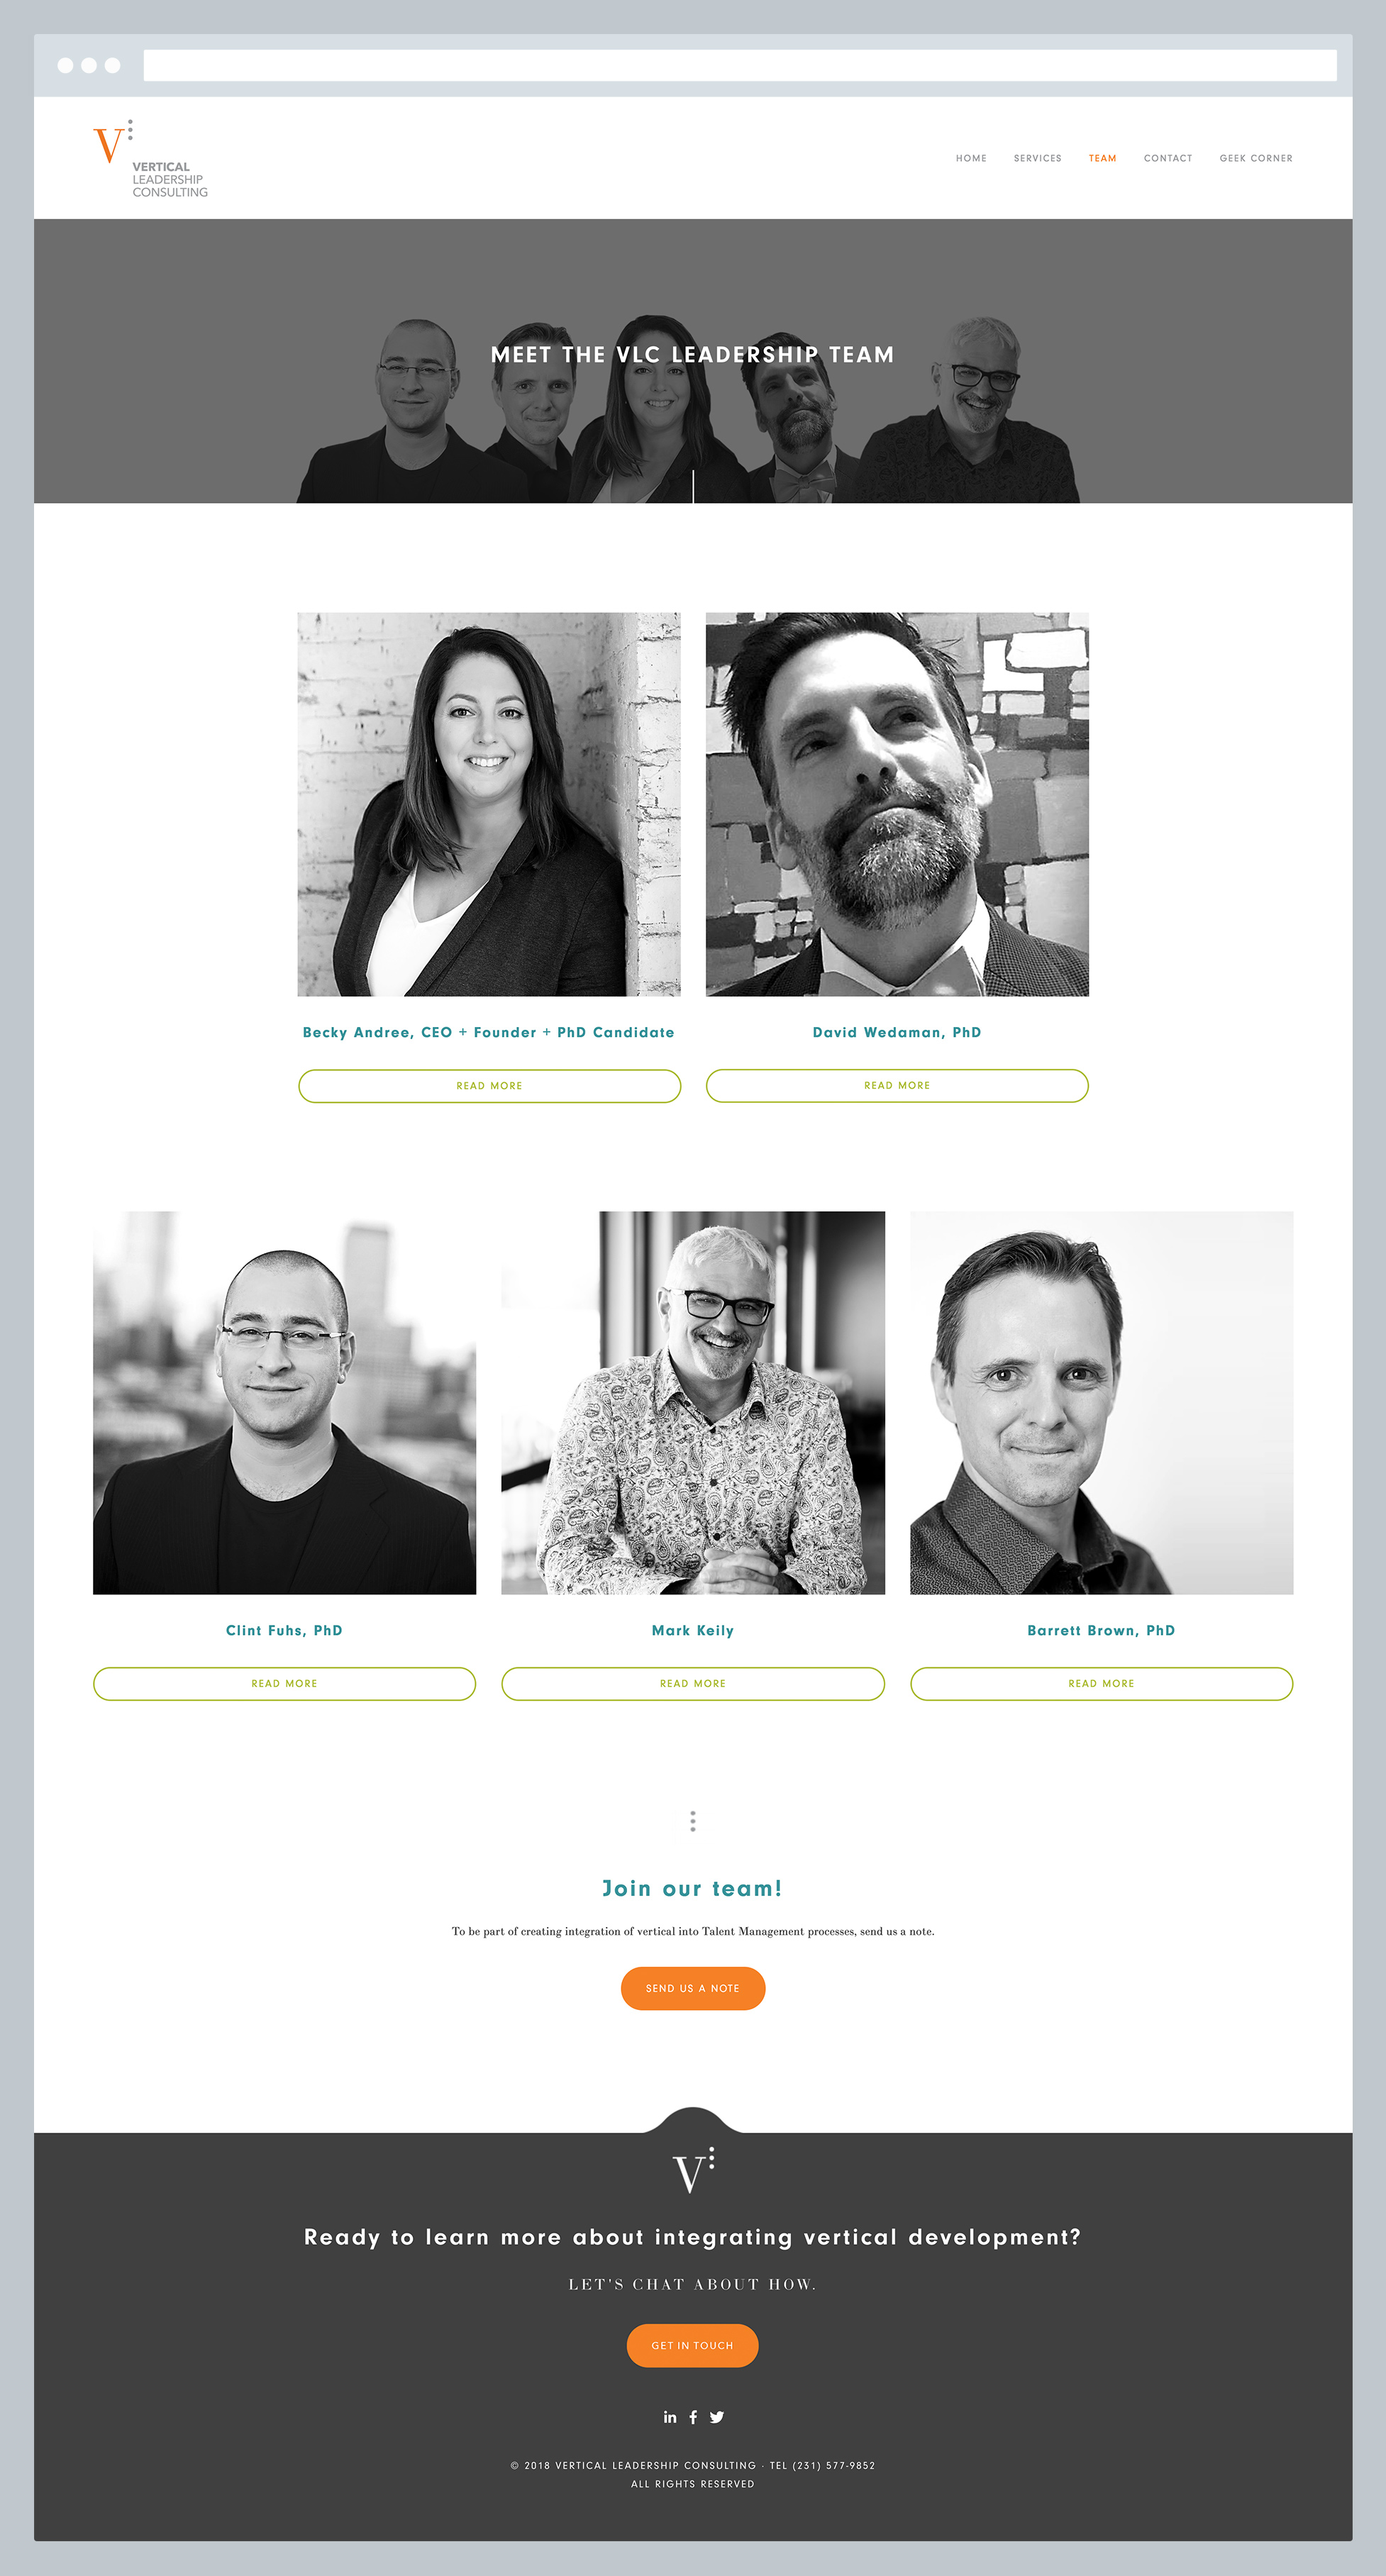 Vertical Leadership Consulting - Team Page, by Janessa Rae Design Creative in collaboration with Sweaty Wisdom